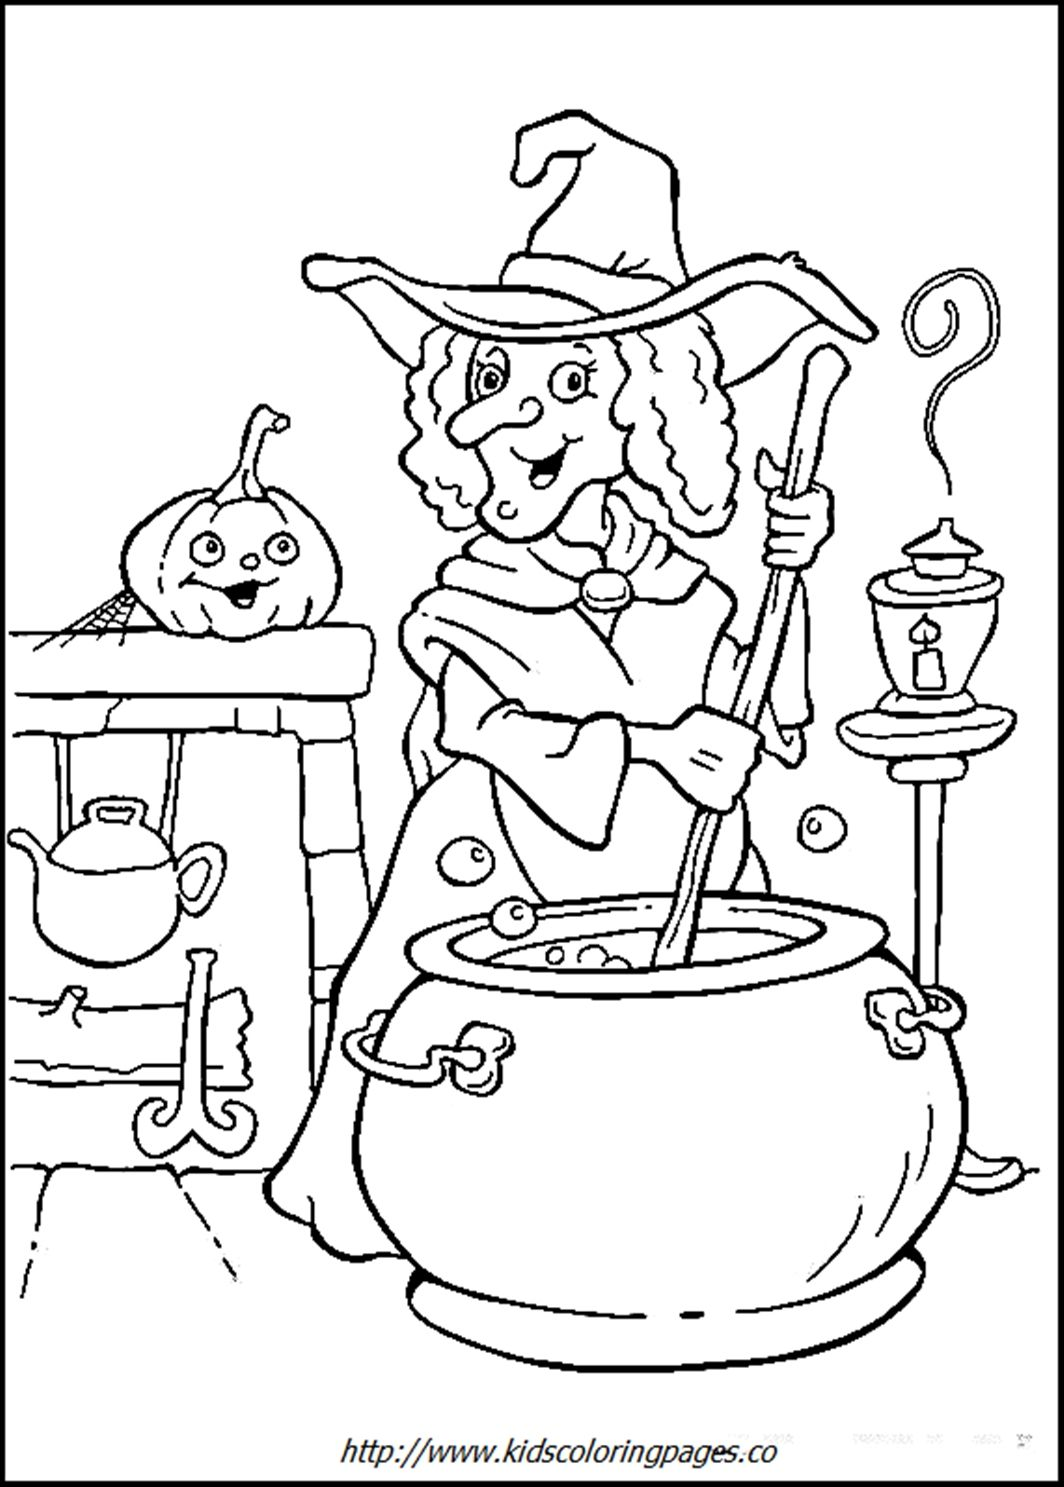 Free printable coloring pages halloween | Halloween | Pinterest